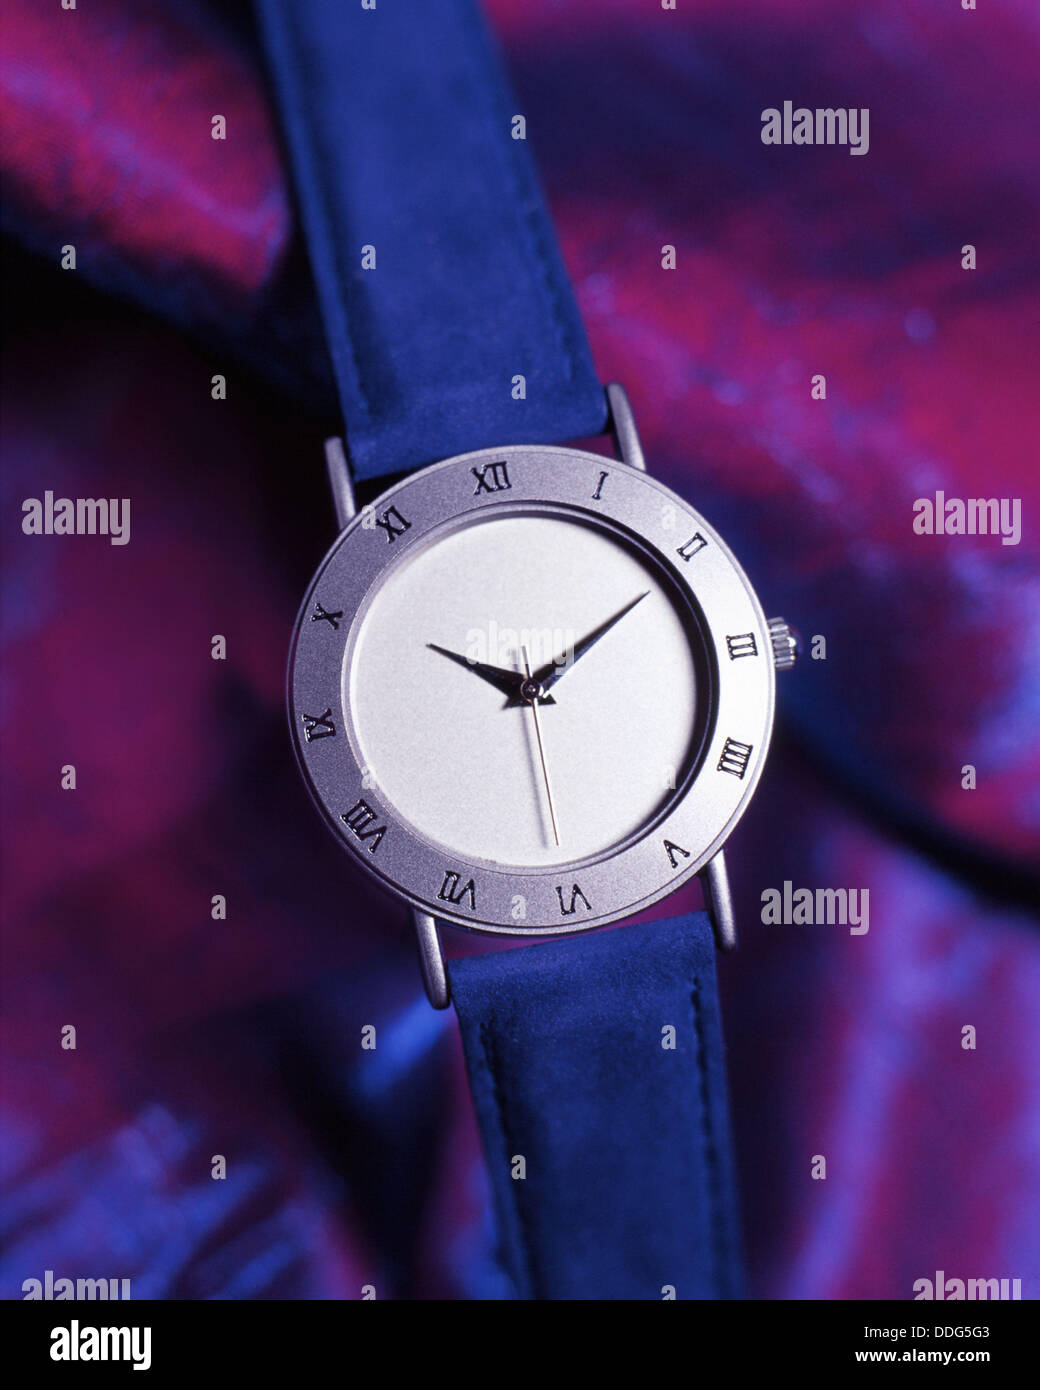 Watch with roman numeral on a purple silken background Stock Photo